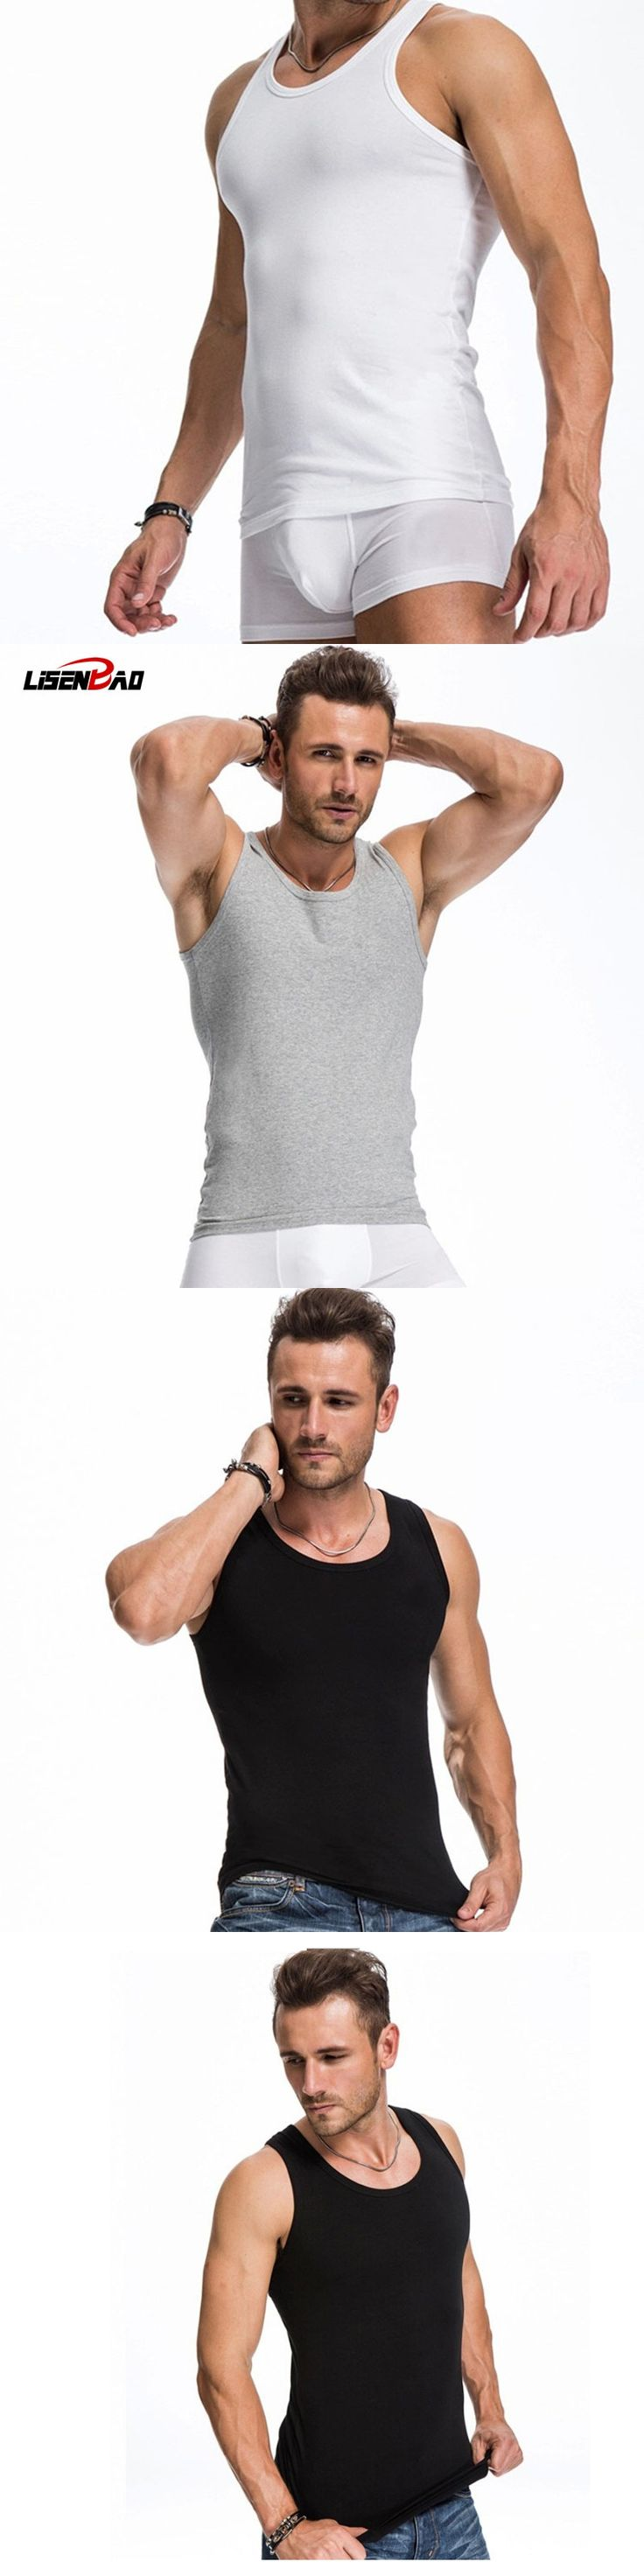 LiSENBAO Mens O-Neck Tank Tops Undershirt,Bodybuilding Equipment Fitness Men gyms Tank Top Golds Vest Stringer Undershirt Cotton